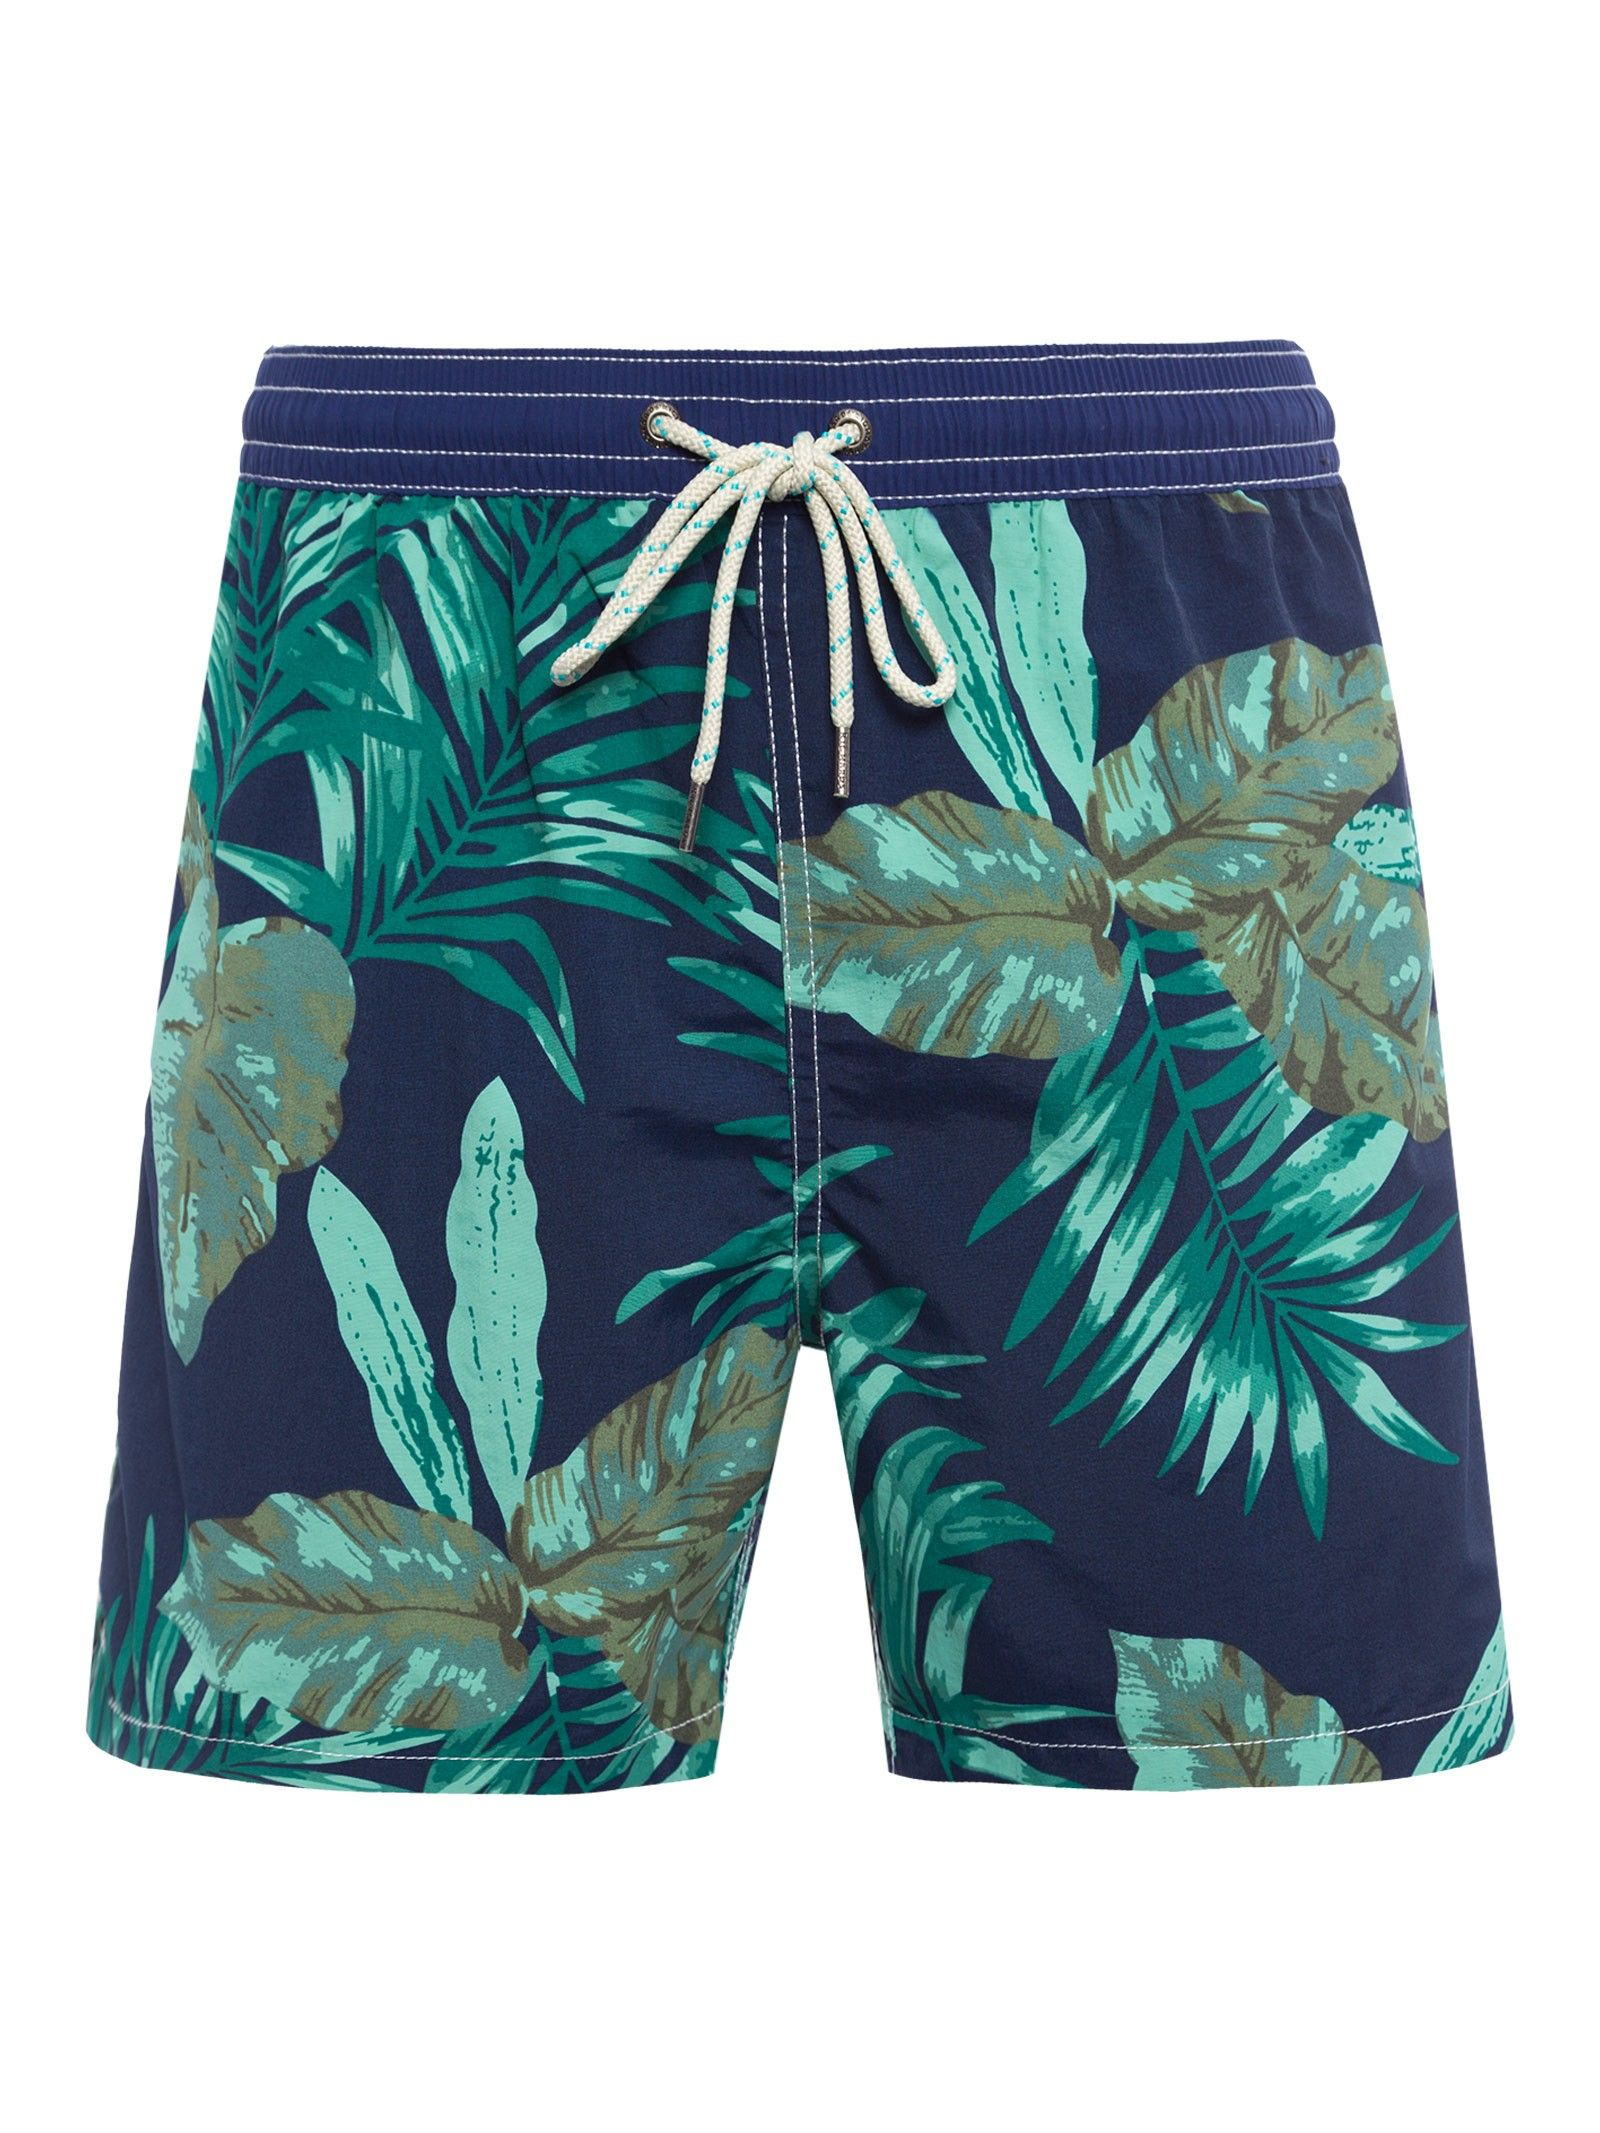 b493f2e26 SHORT MASCULINO PRAIA WEST POINT - AZUL E VERDE | dream closet em ...